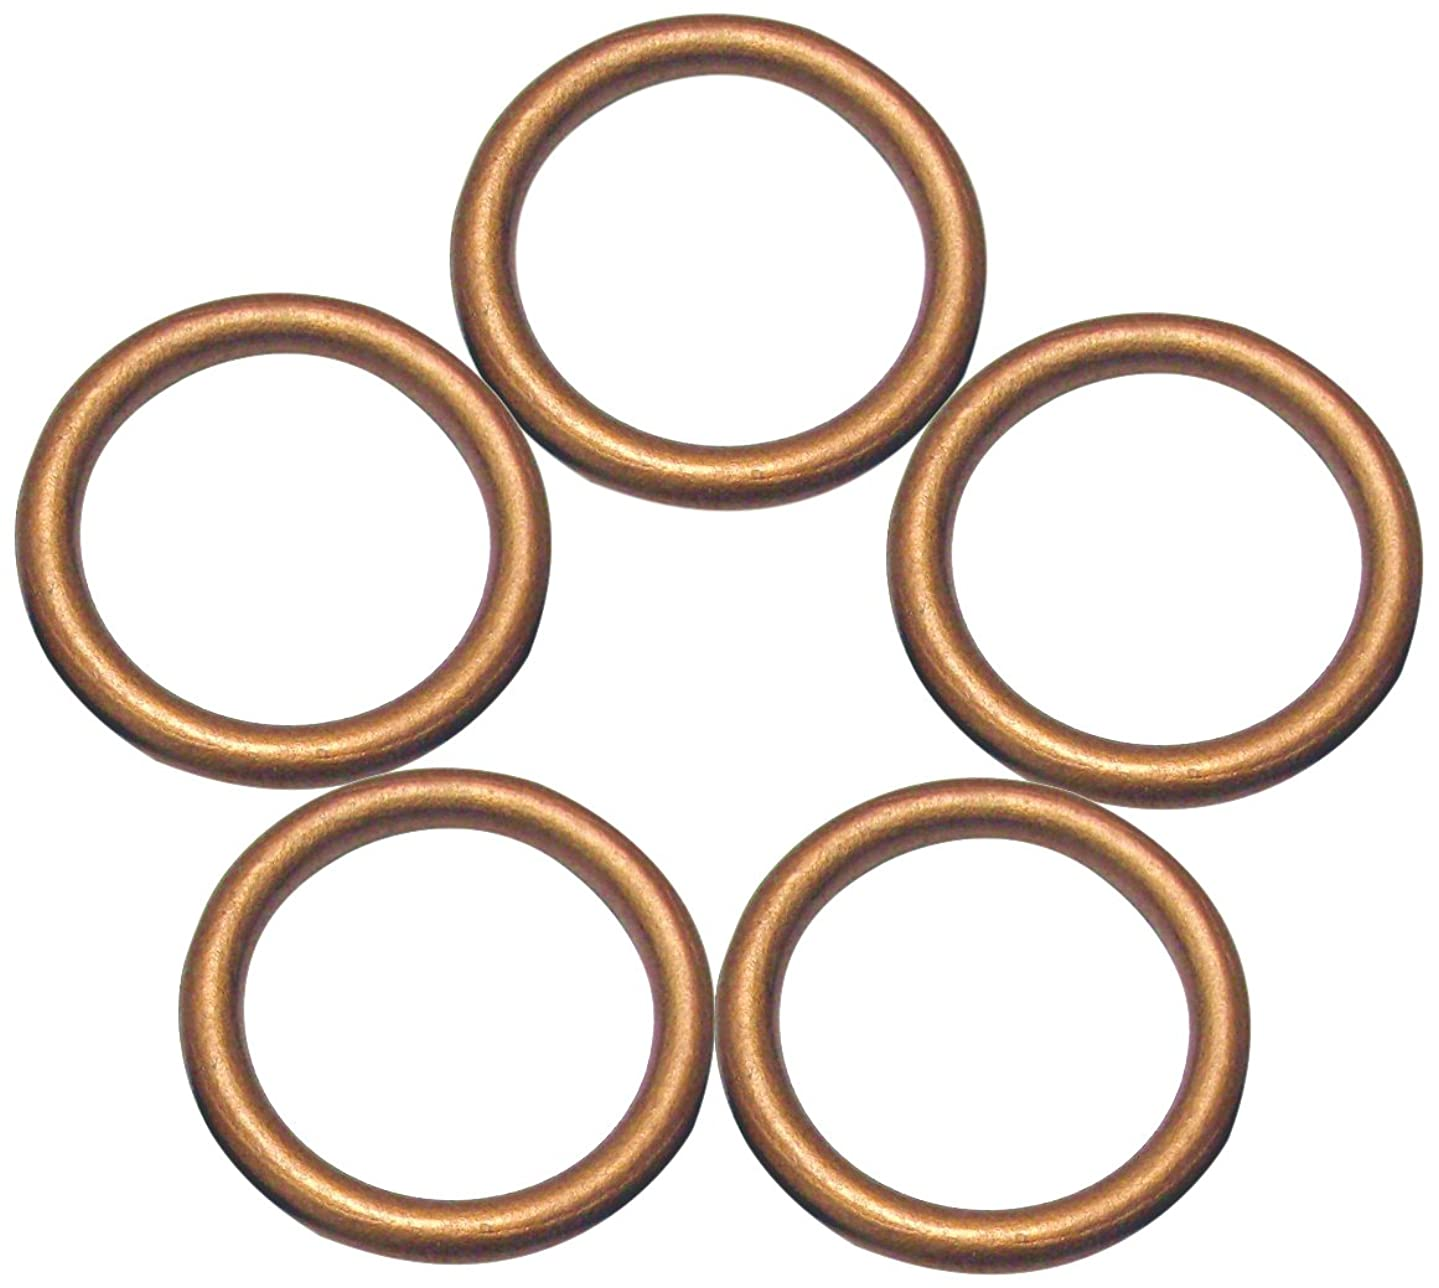 Linpeng Wood Loops/Wooden Rings for Craft Work/DIY Jewelry/Ring Pendant/Jewelry Making Connectors/Ring Size 68mm, Thickness 8mm/ Copper Brown Color / 5PCS